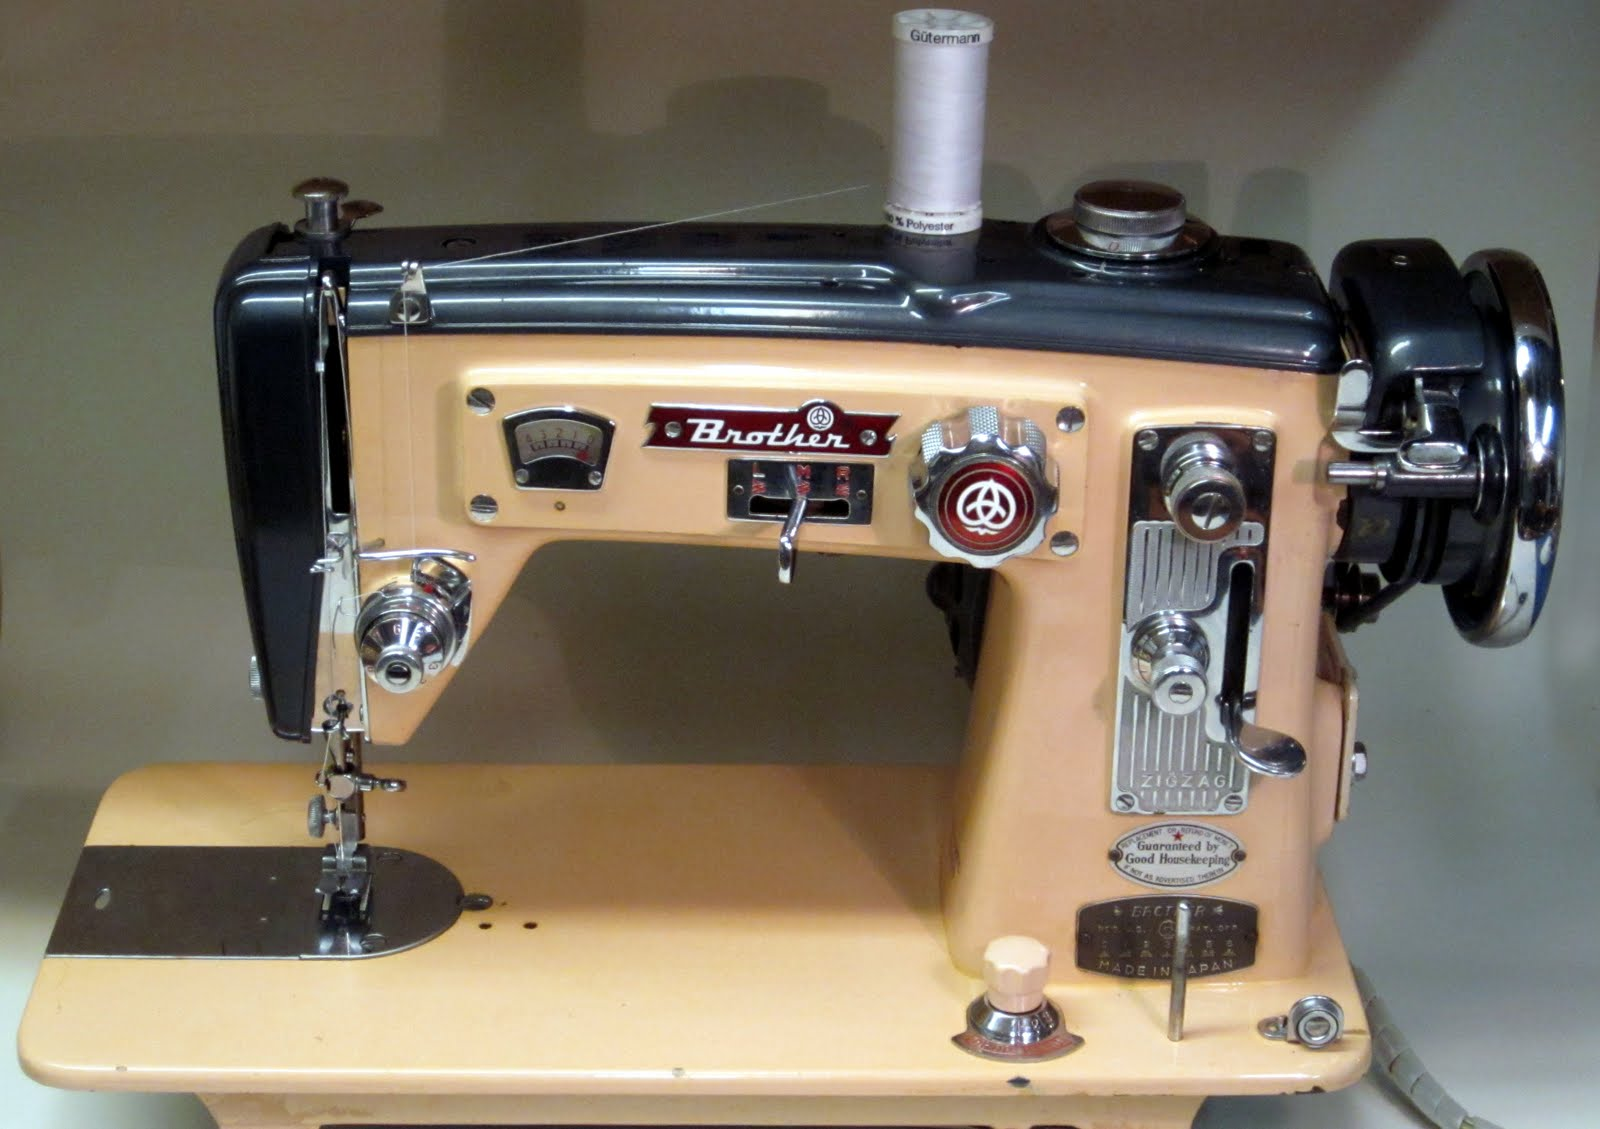 mi vintage sewing machines brother select o matic 1957 rh mivintagesewingmachines blogspot com Brother Sewing Machine User Manual Brother Sewing Machine LS2250PRW Manual